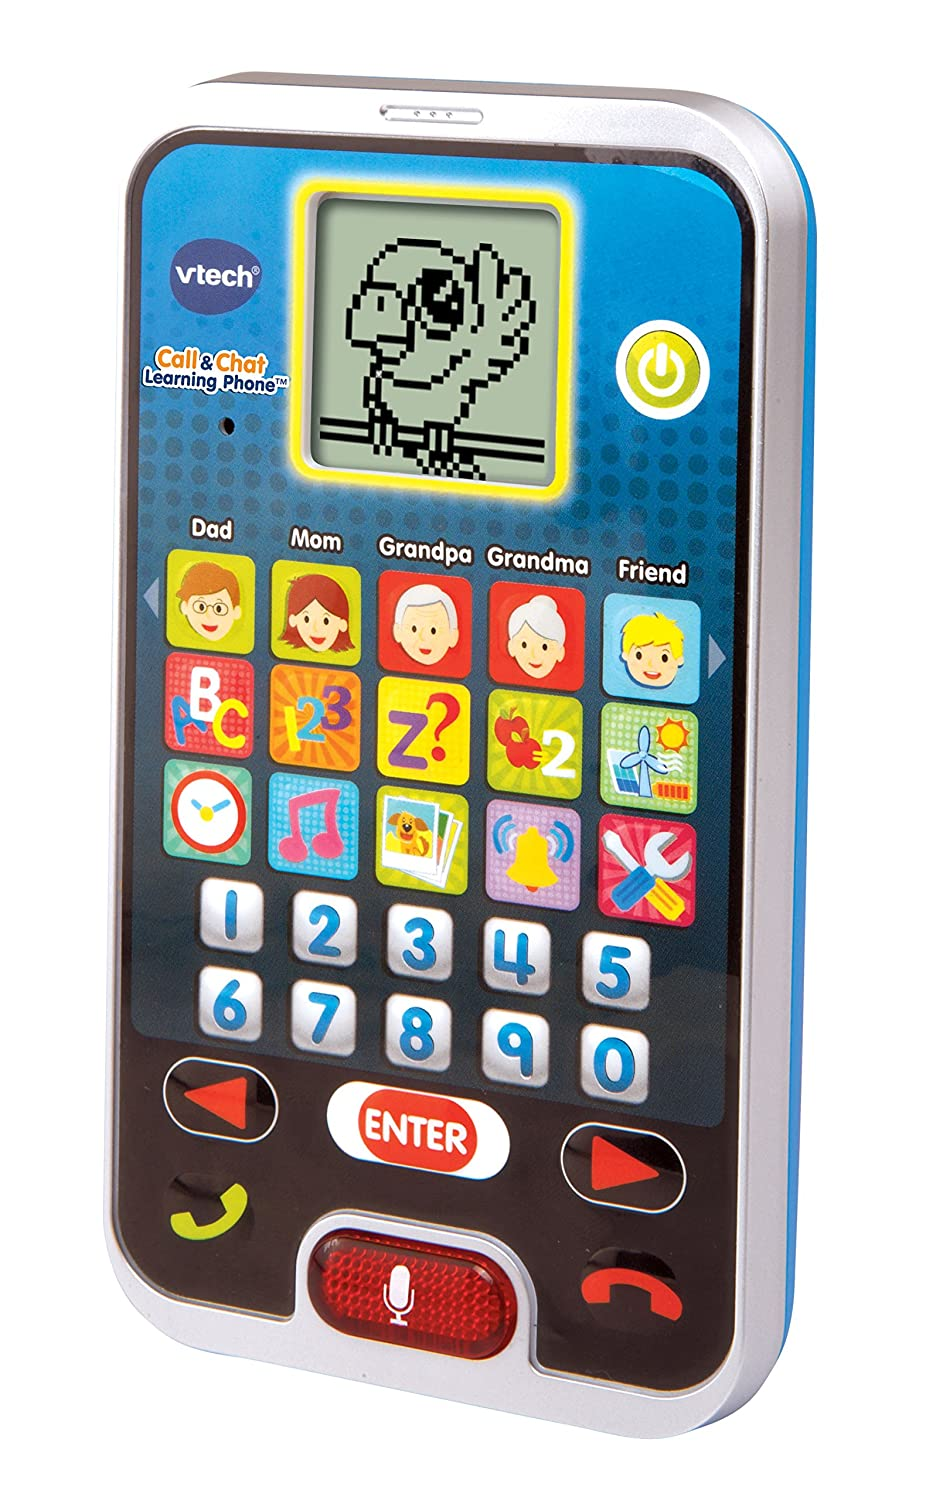 Vtech Call And Chat Review With Video